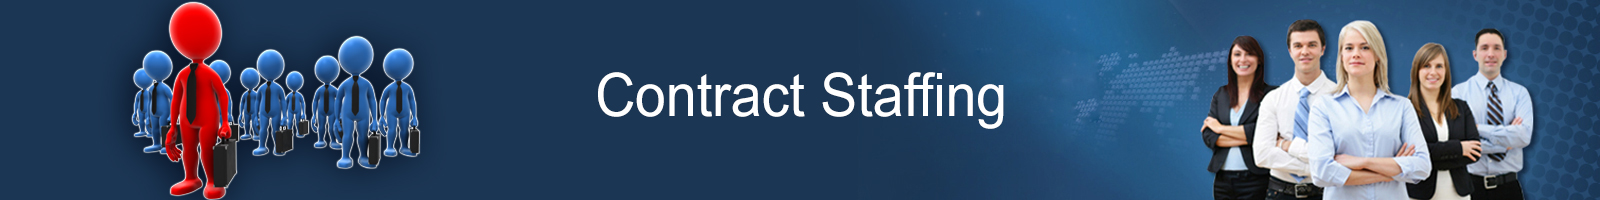 Contract Staffing Services